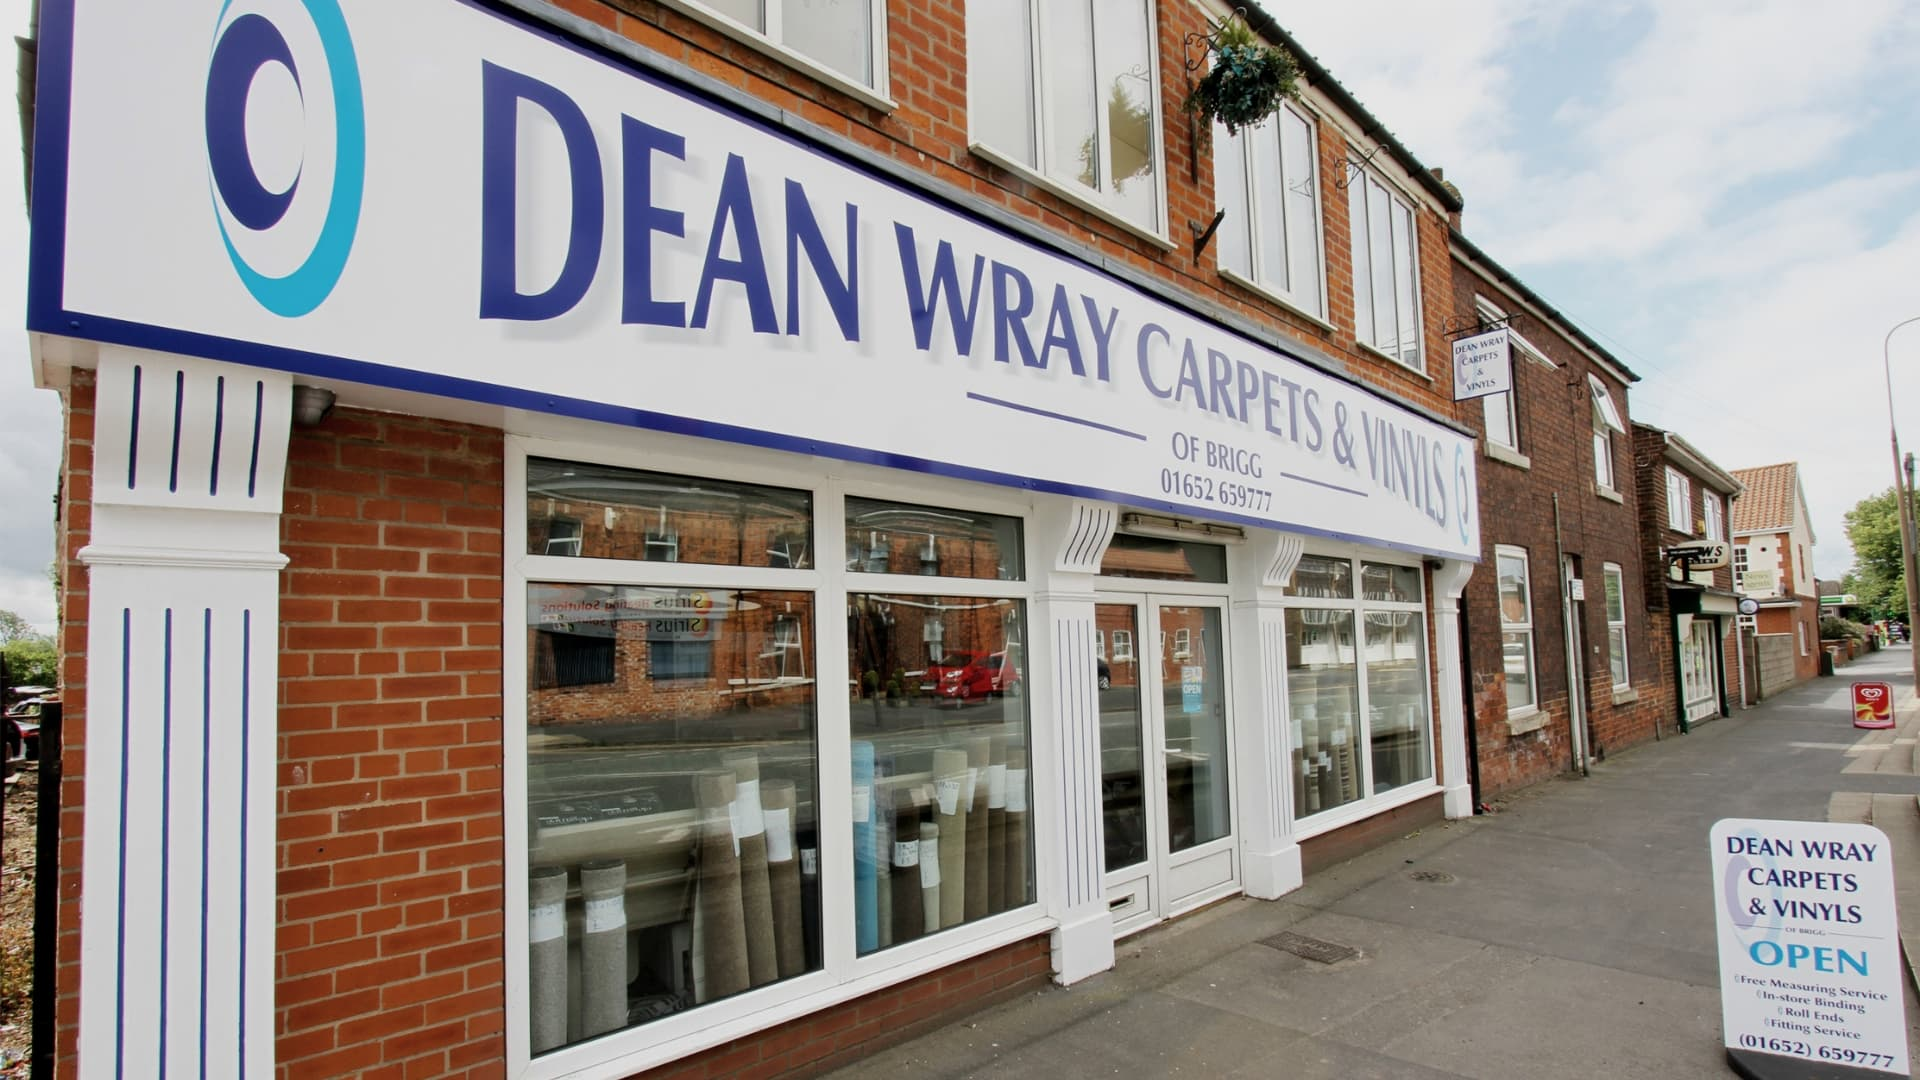 Dean Wray Carpets and Vinyls showroom in Bridge Street Brigg